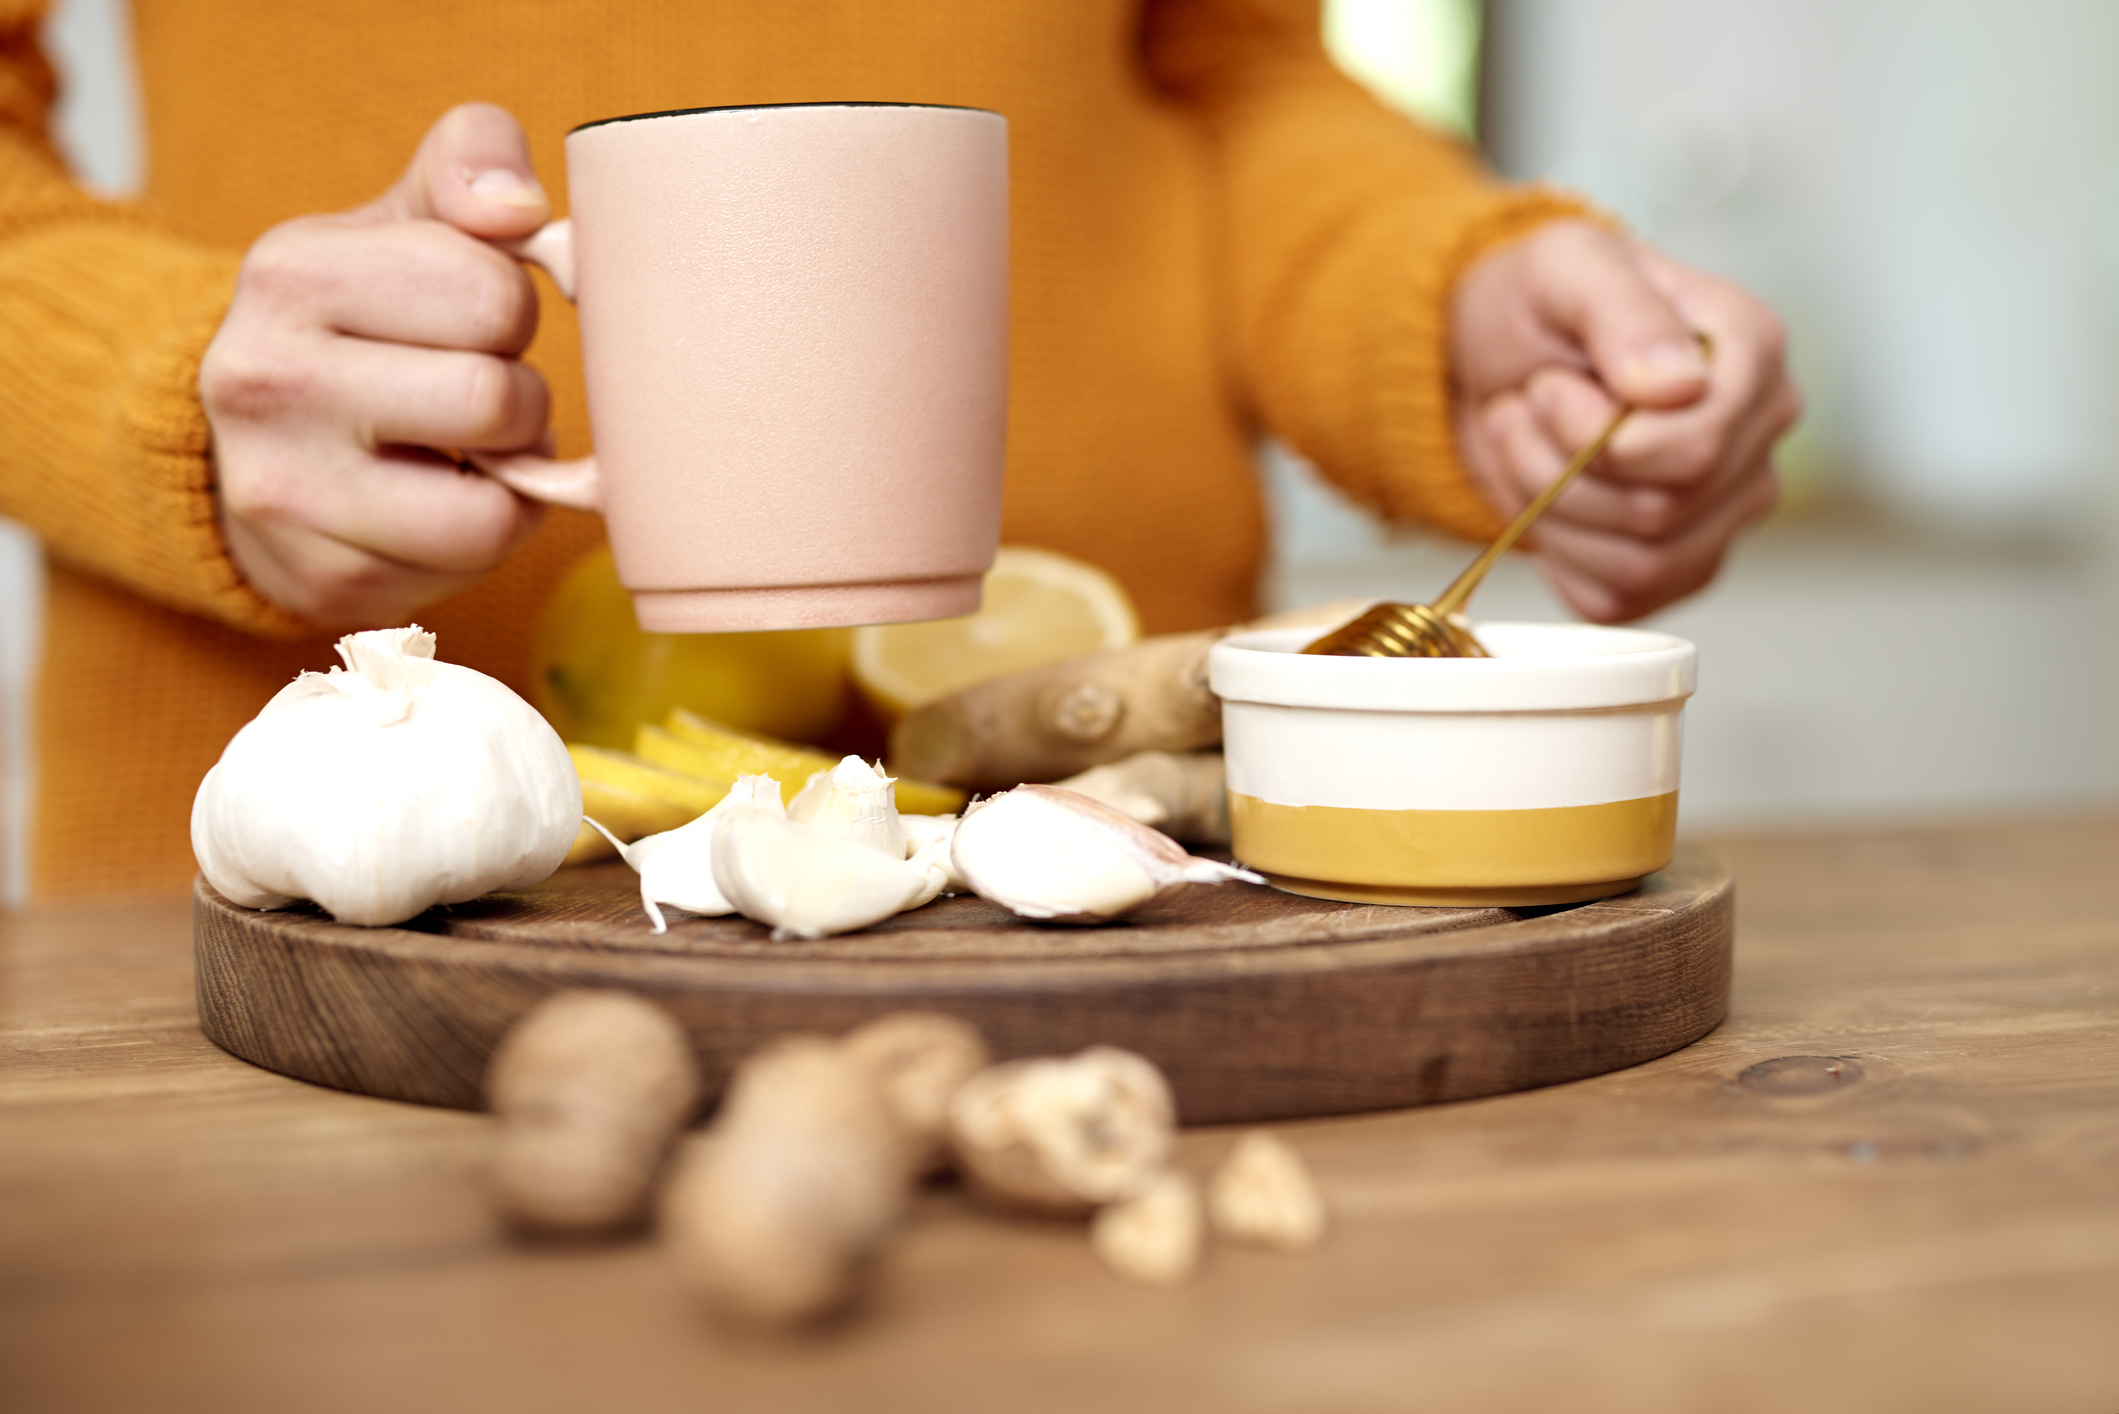 What garlic can do for the common cold